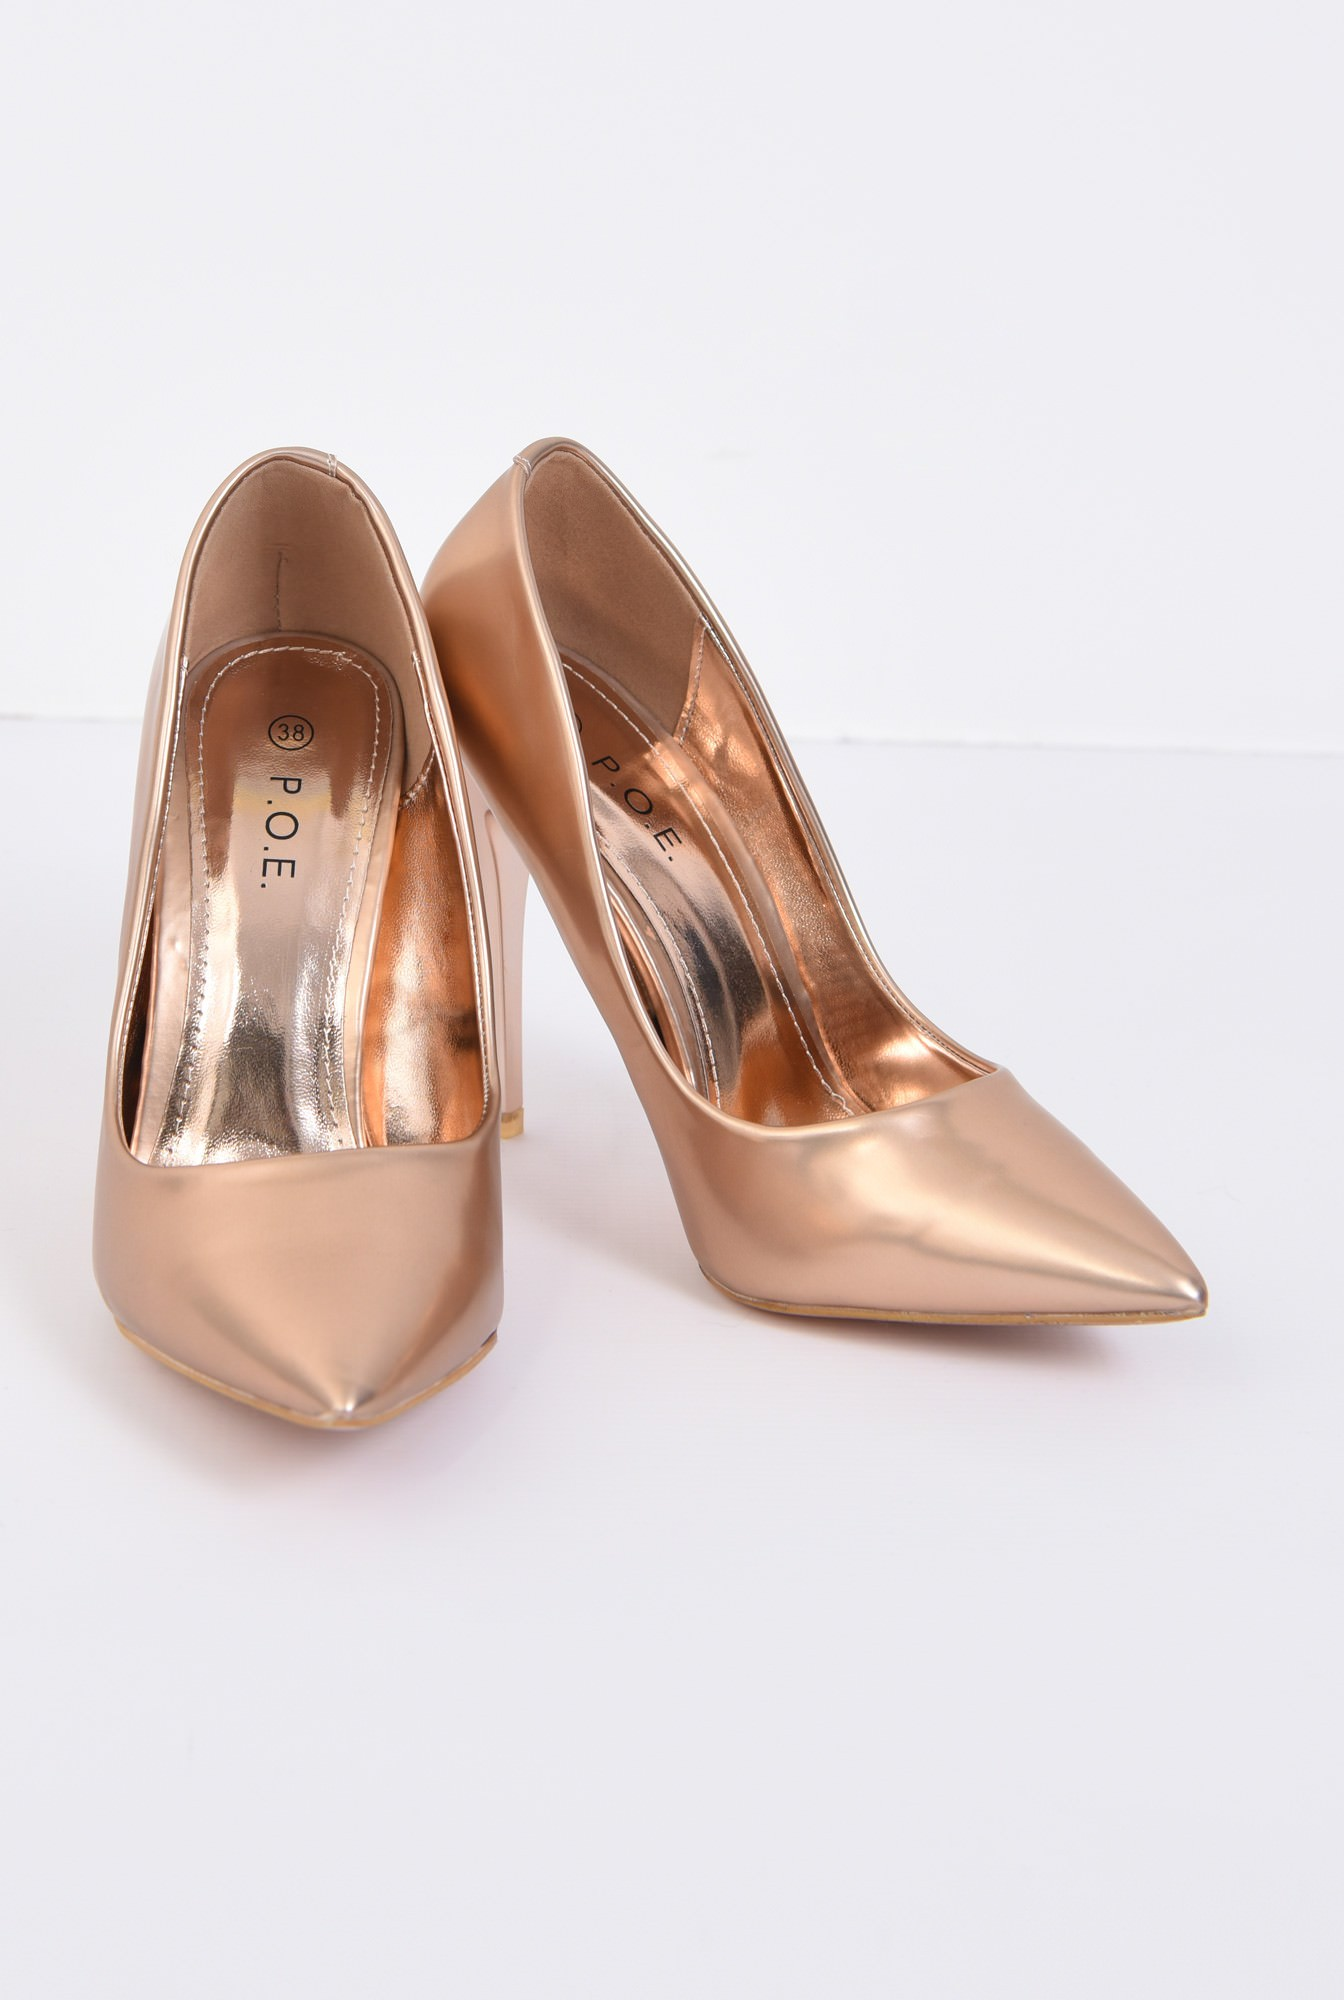 3 - PANTOFI STILETTO PO10091701-GOLD/ROSE